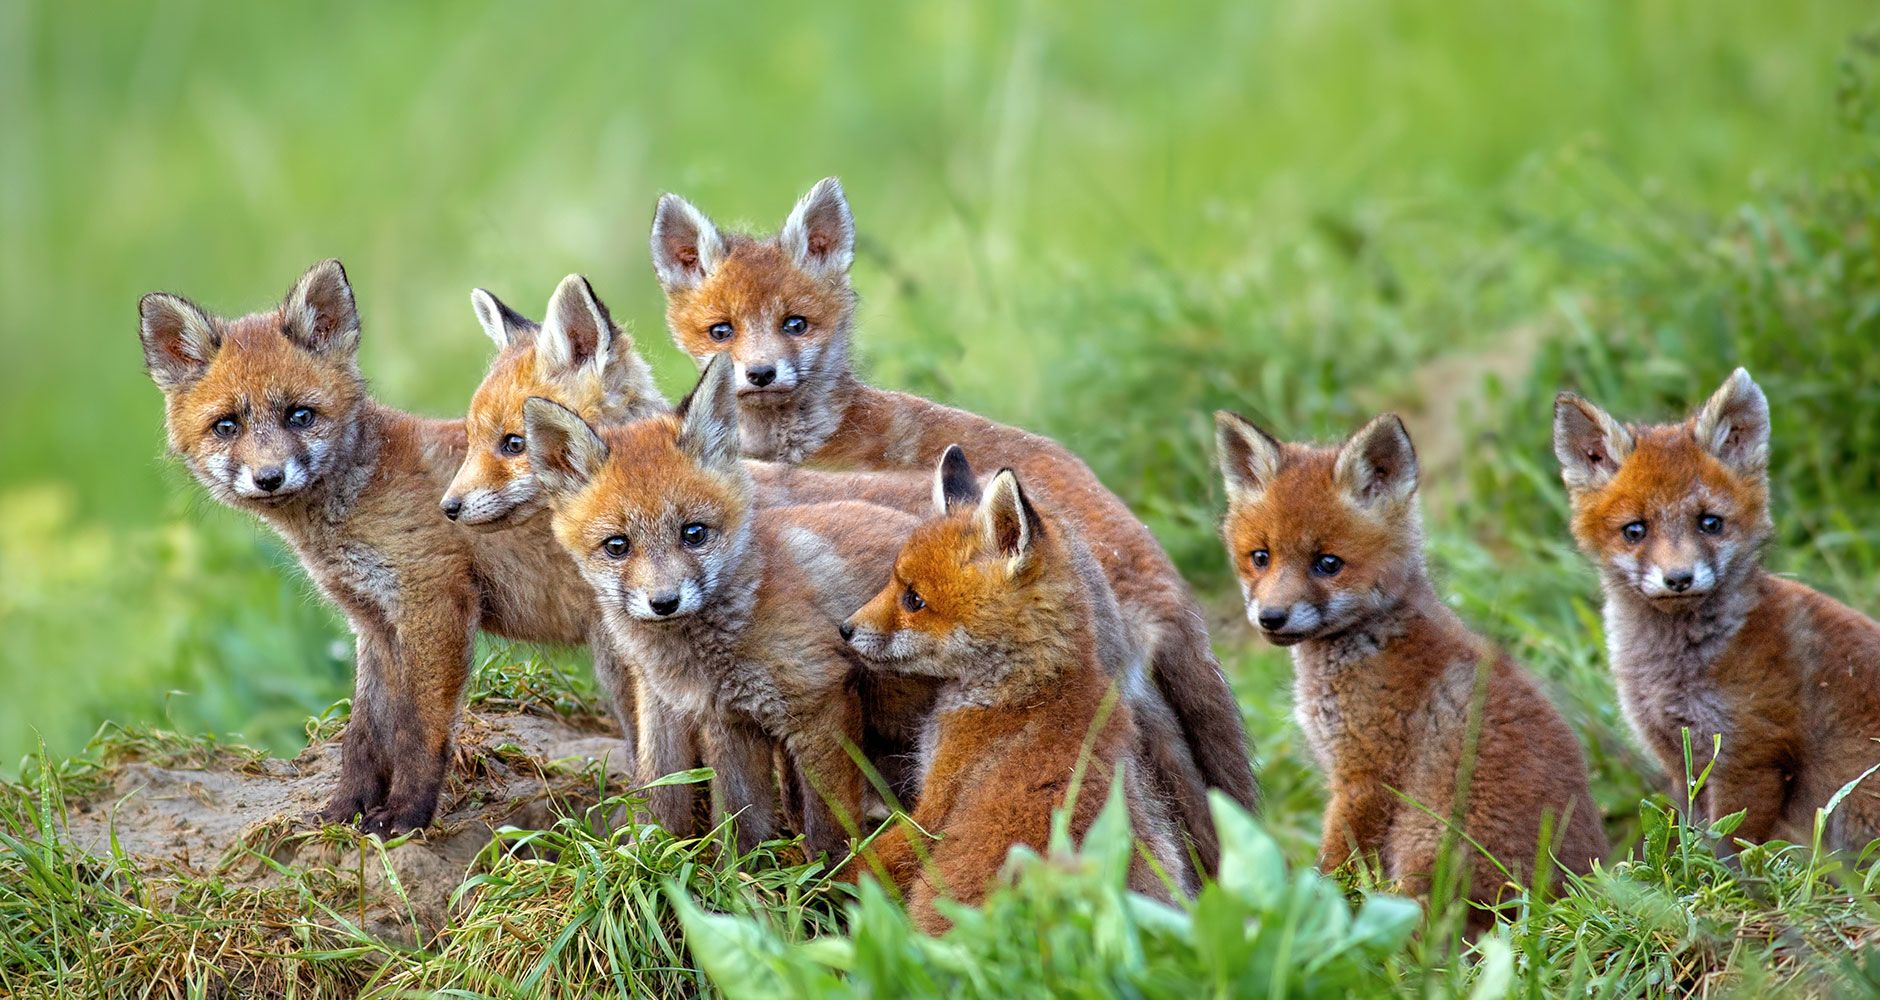 25 Of The Strangest Names For Groups Of Animals